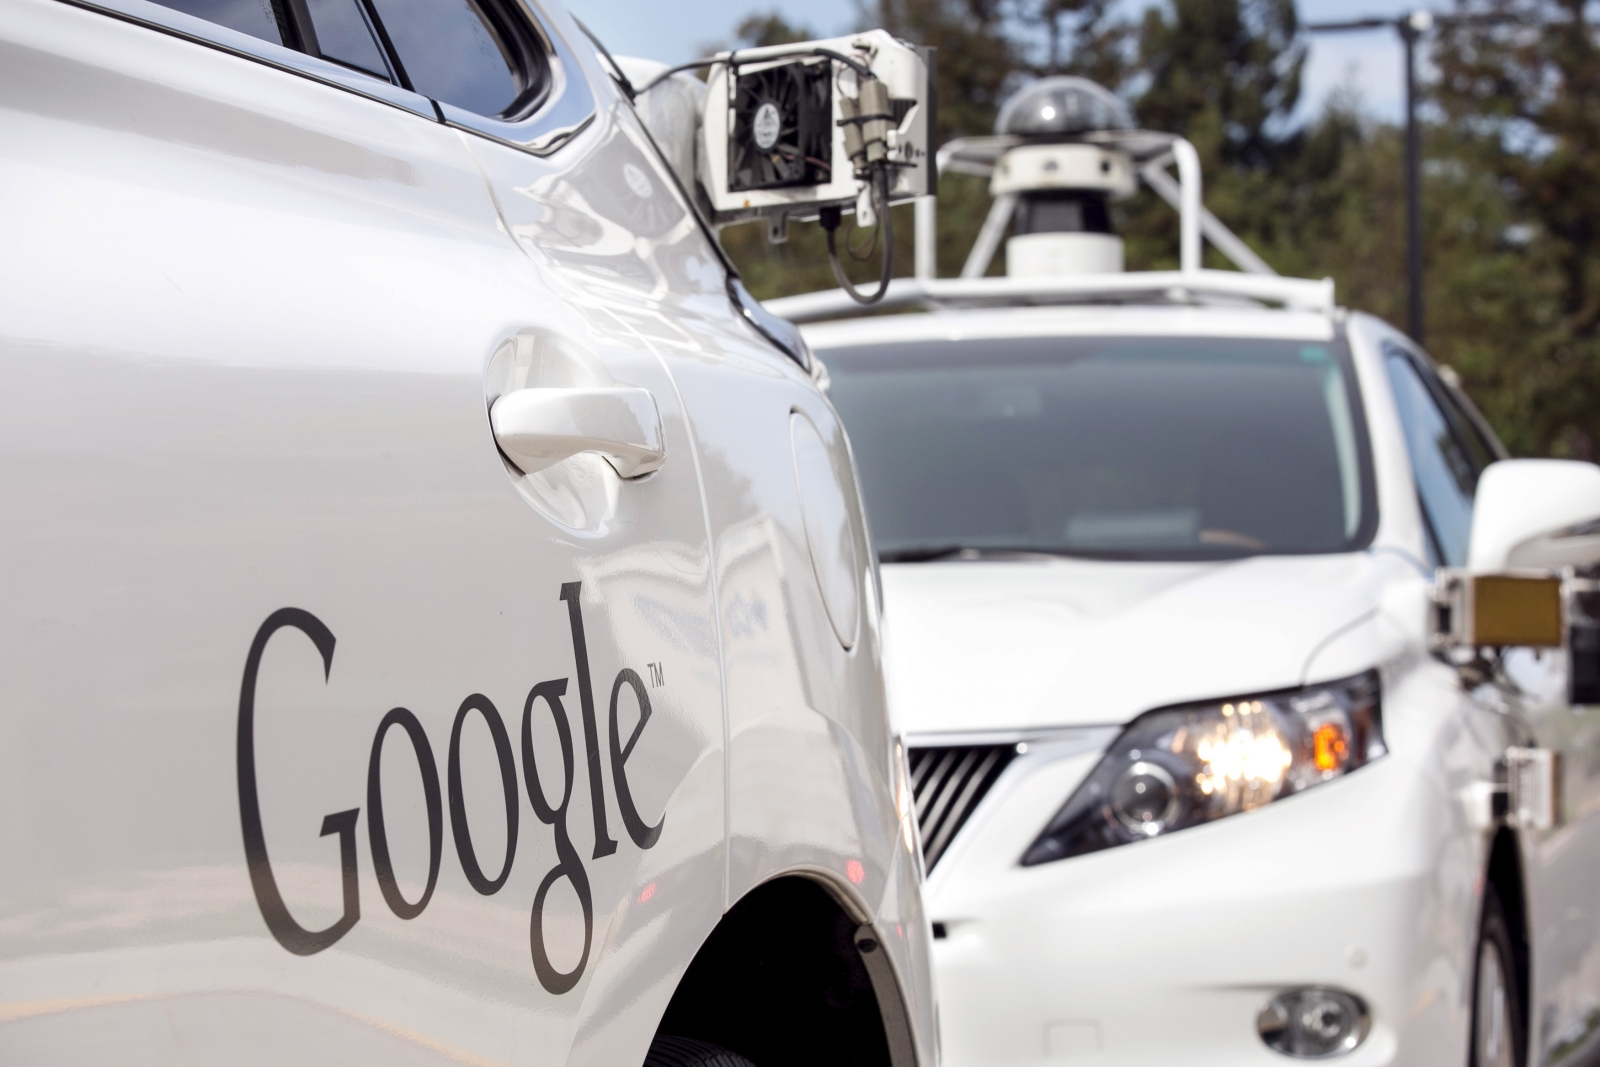 Google driverless auto division invents technology for automatically detecting police cars